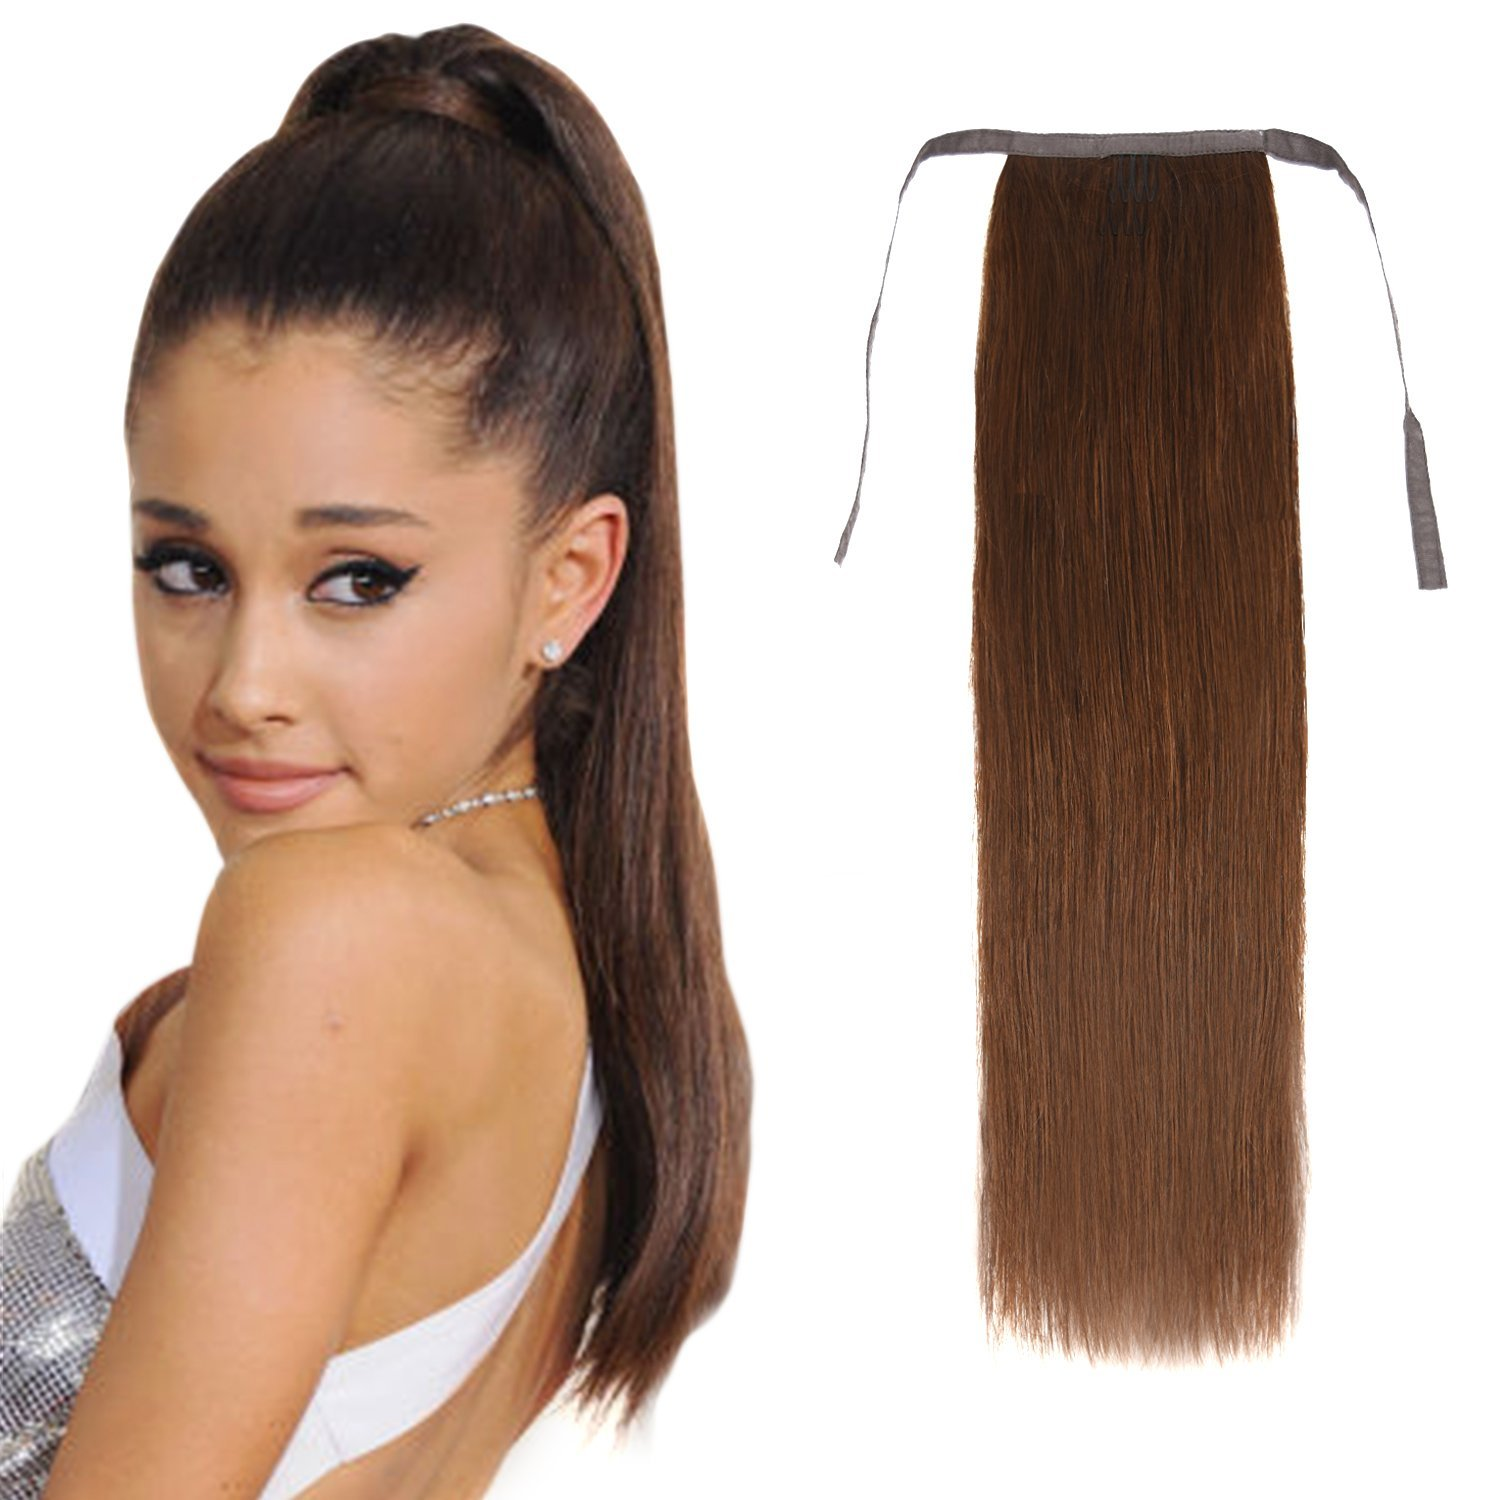 Buy 20 Wrap Around Human Hair Ponytail Extensions Hairpiece Long